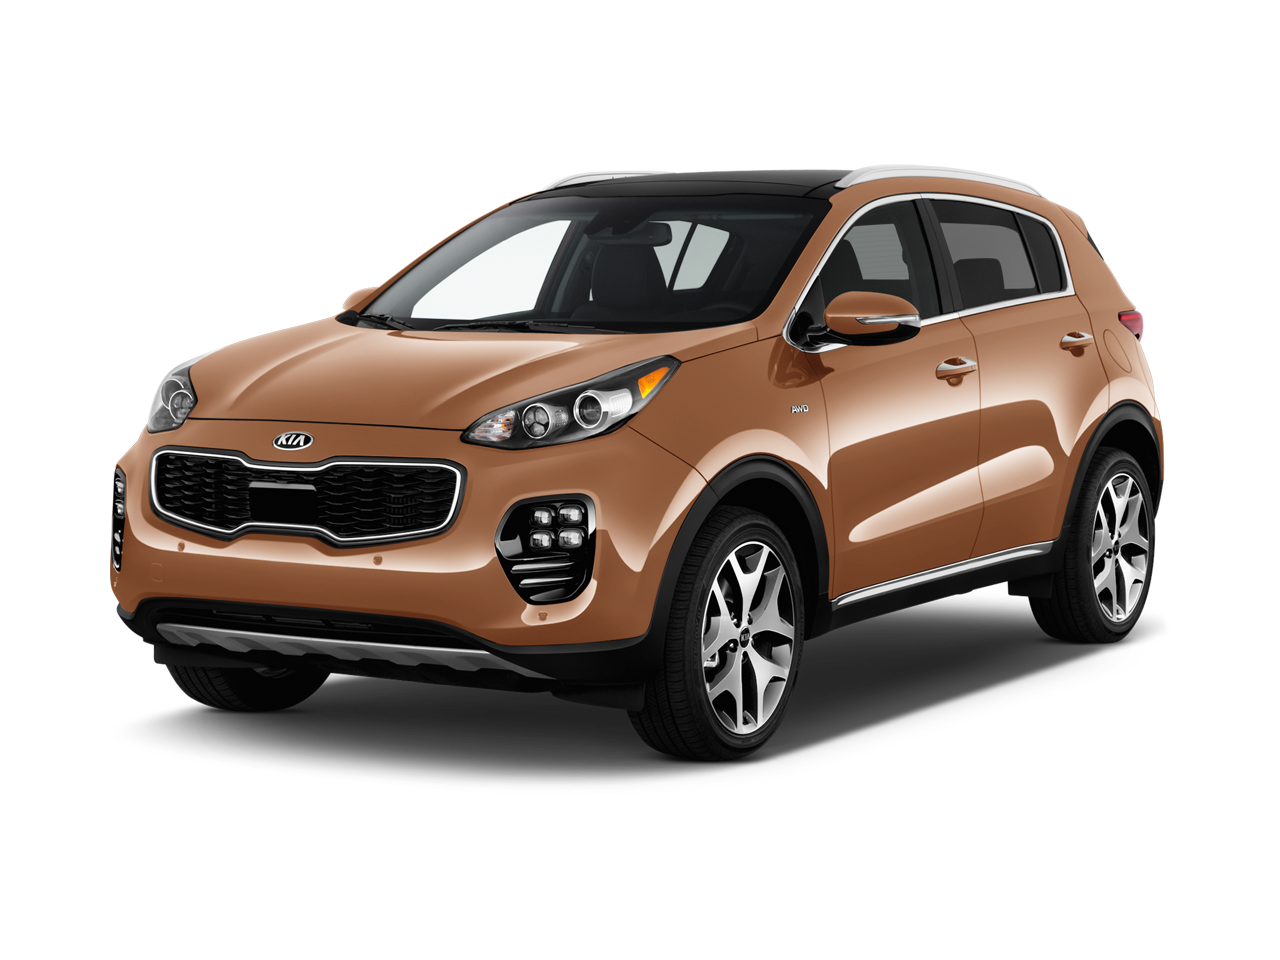 2017 Optima Dealer In San Antonio Tx >> New 2017 Kia Sportage EX - San Antonio TX - Legend Kia